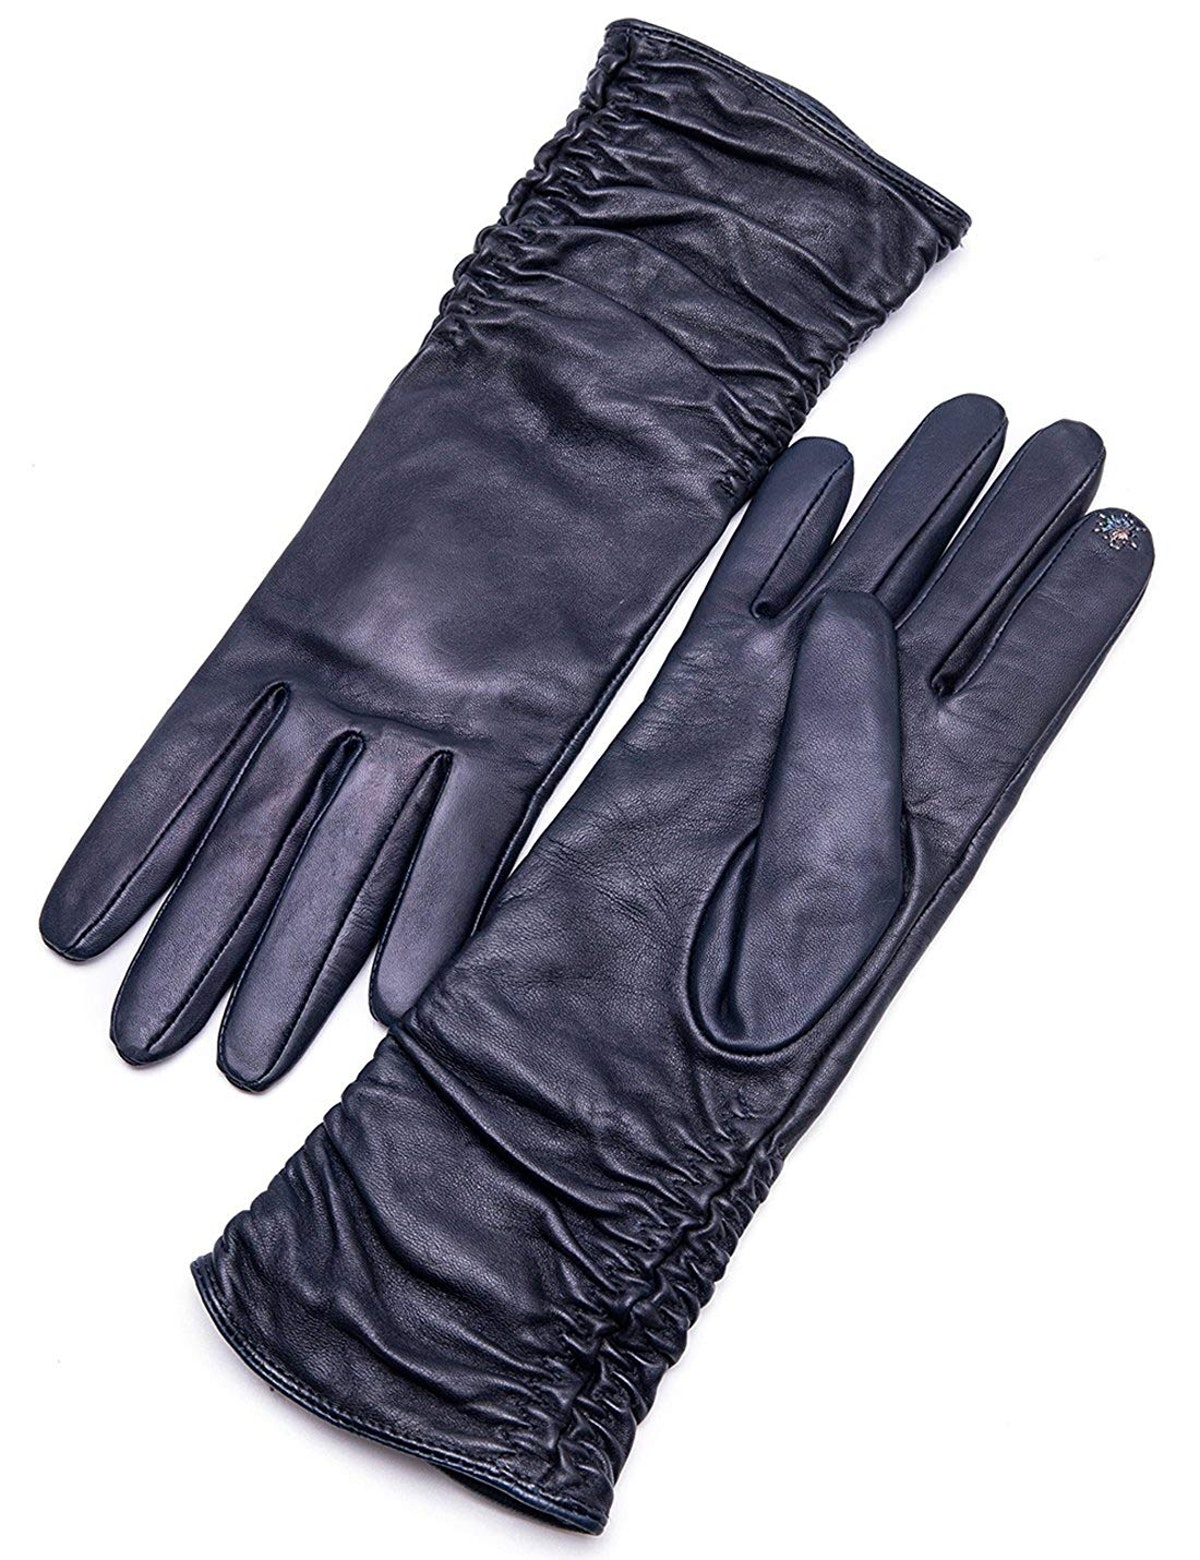 Yiseven Women's Mid-Length Leather Gloves